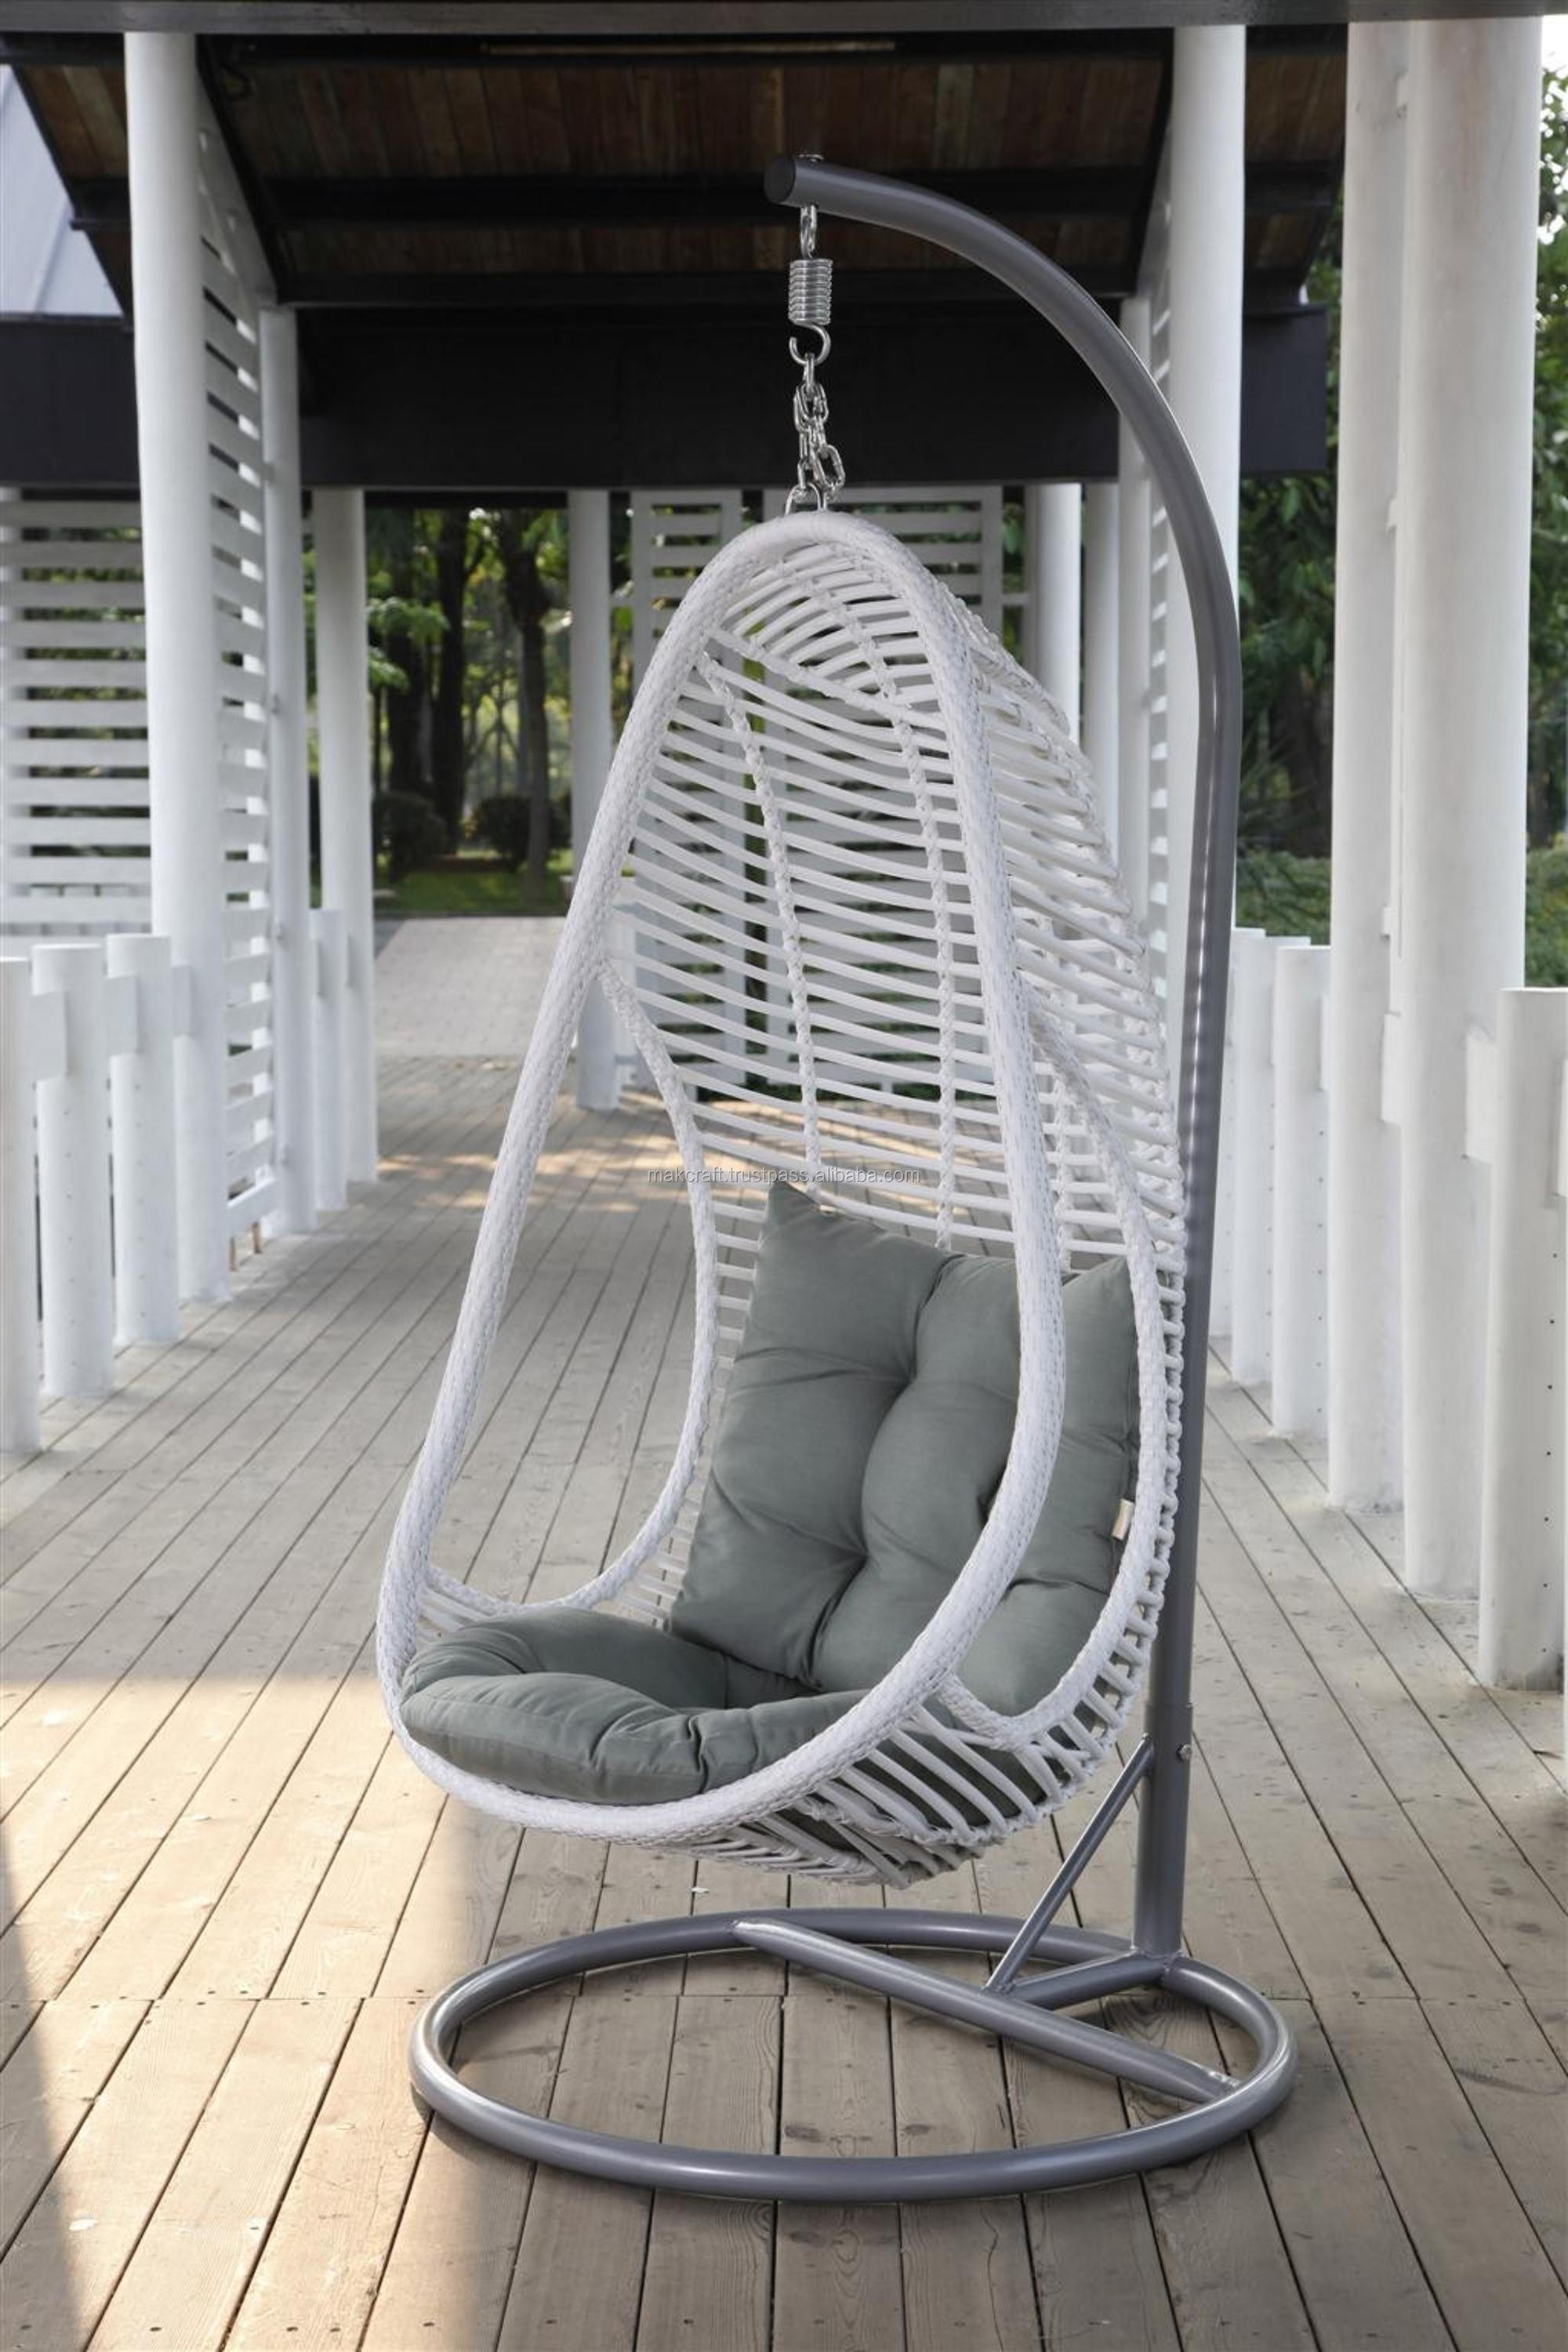 Ei Voor In De Tuin.Rieten Rotan Outdoor Tuin Swing Egg Chair Tuin Rotan Swing Egg Chair Patio Swing Ei Stoel Met Stalen Frame Meubels Buy Rieten Opknoping Swing Ei